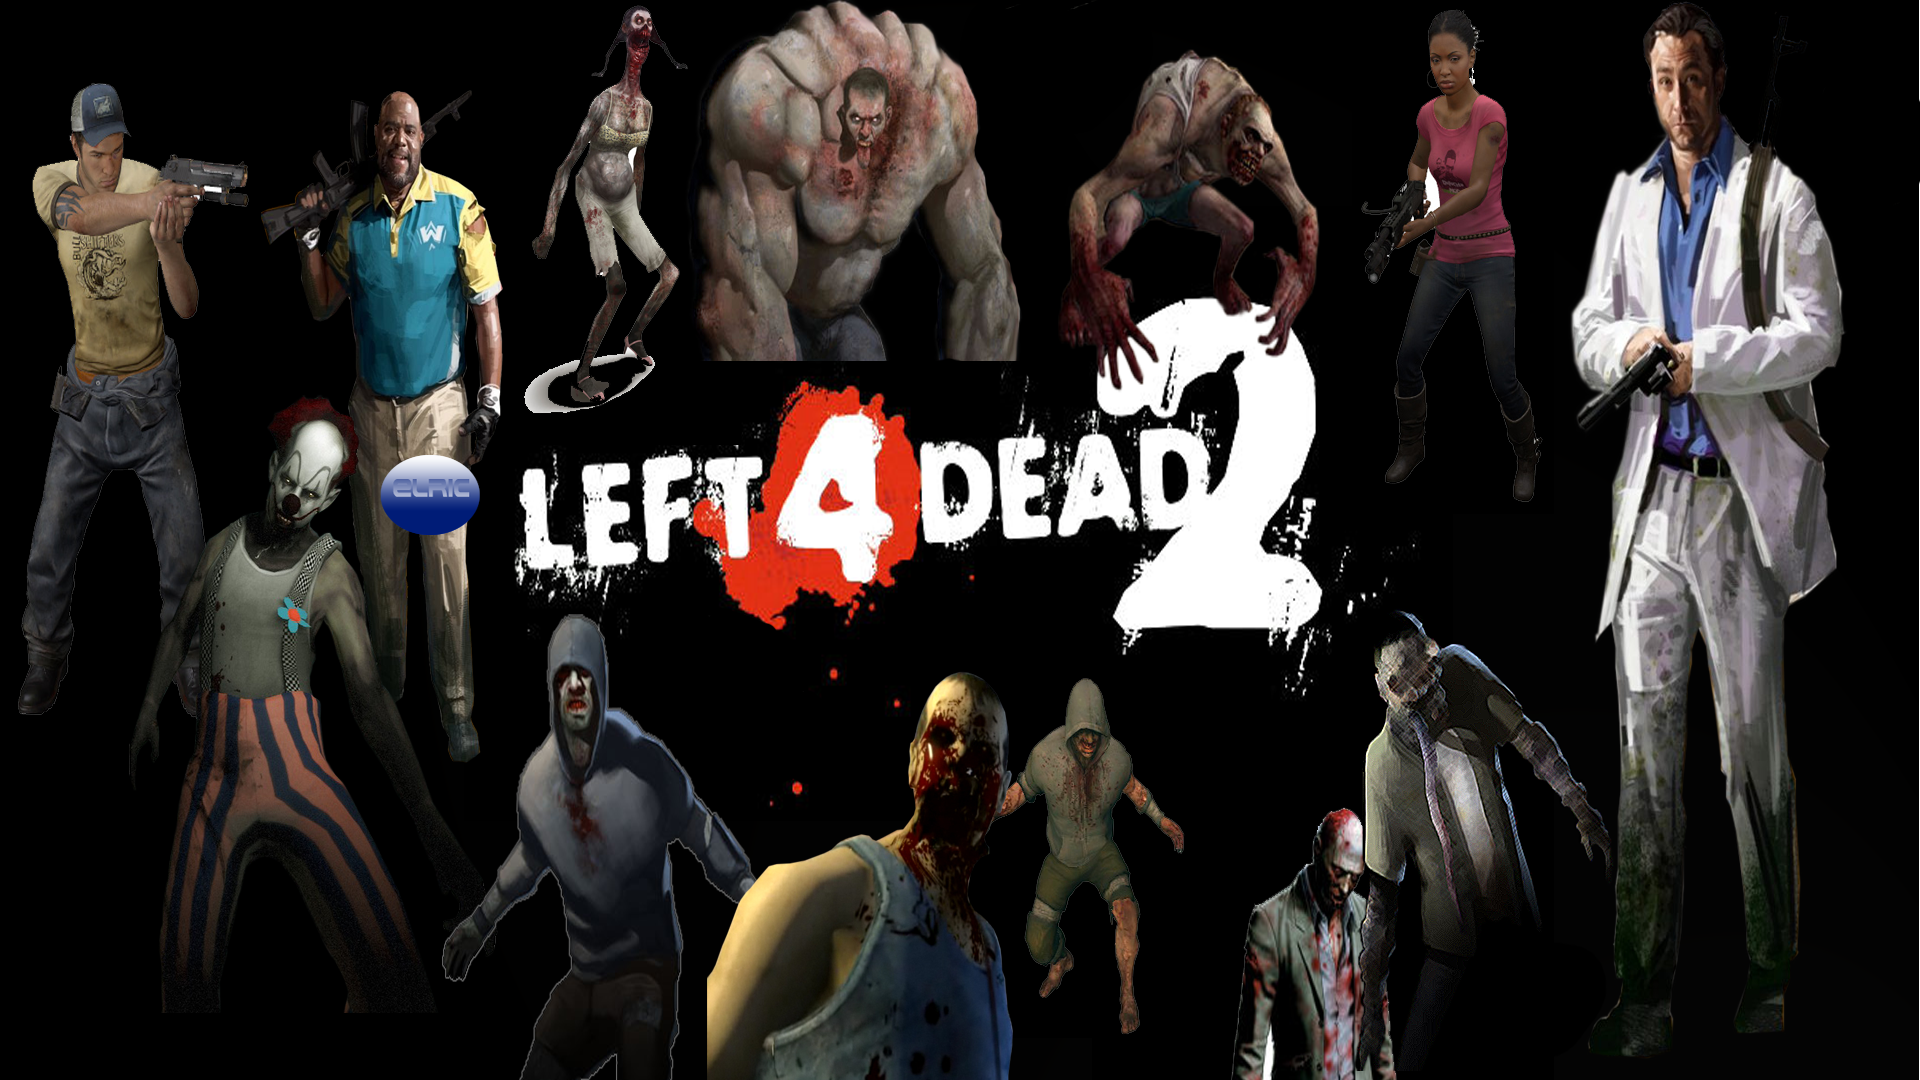 http://fc03.deviantart.net/fs71/f/2010/242/b/6/left_4_dead_wallpaper_by_awesomeheadhunter-d2xo911.png